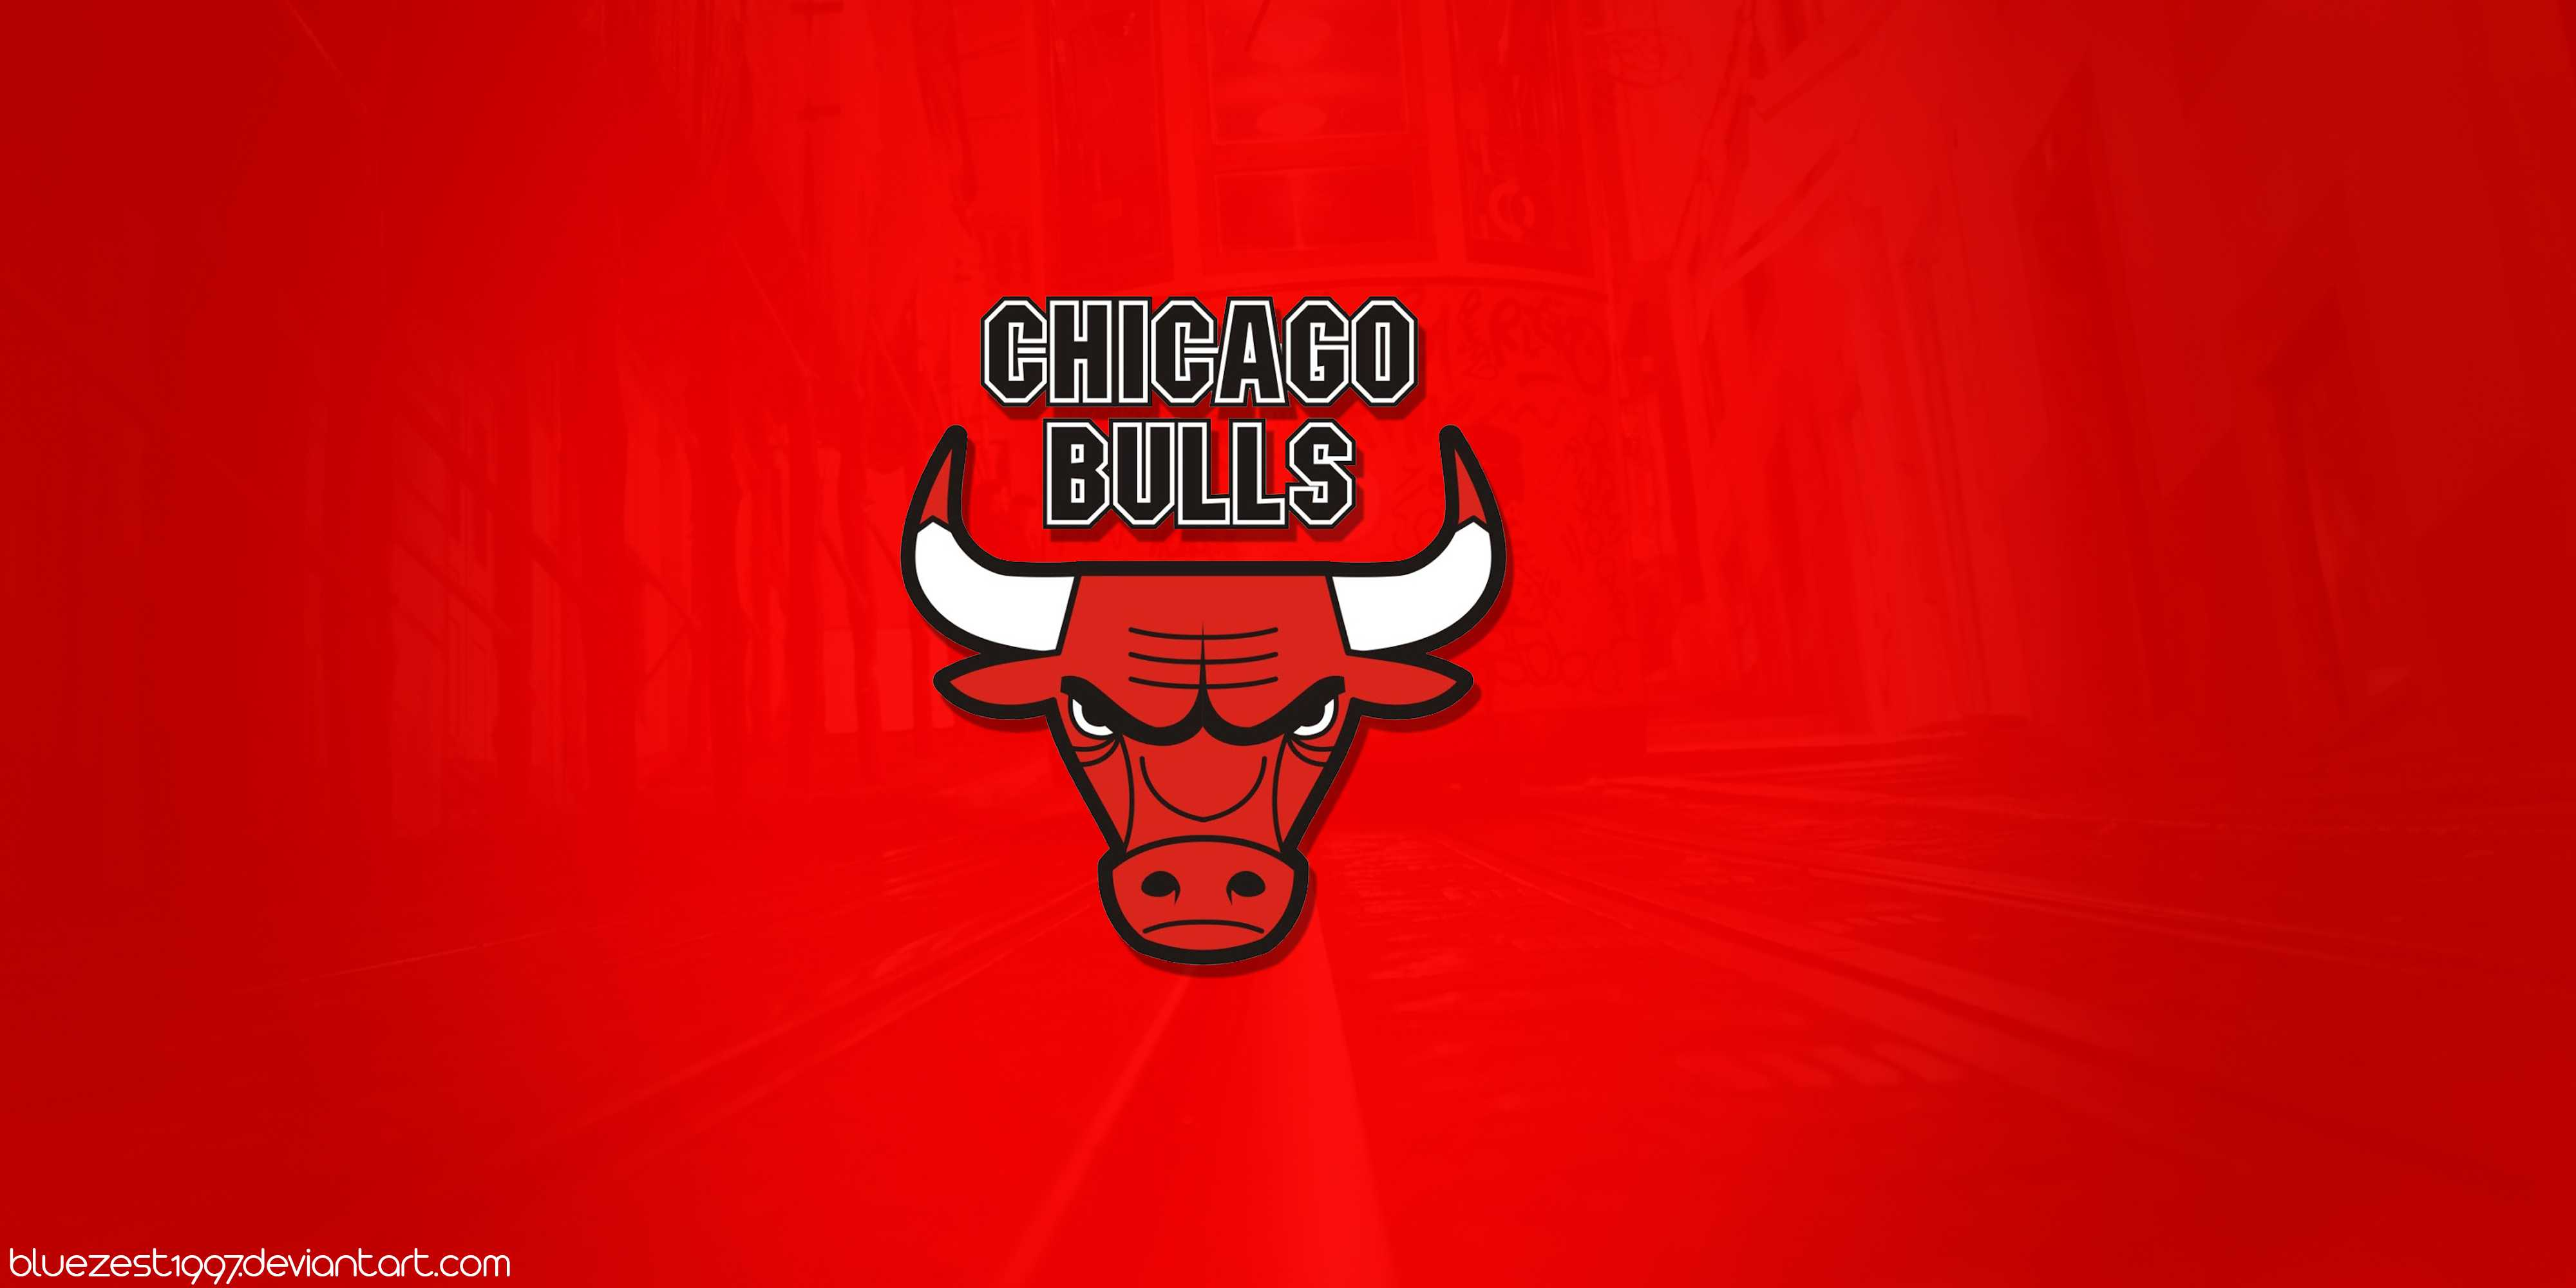 Chicago Bulls Wallpapers Hd J22O   WALLEOCO   WALLEOCO 4000x2000